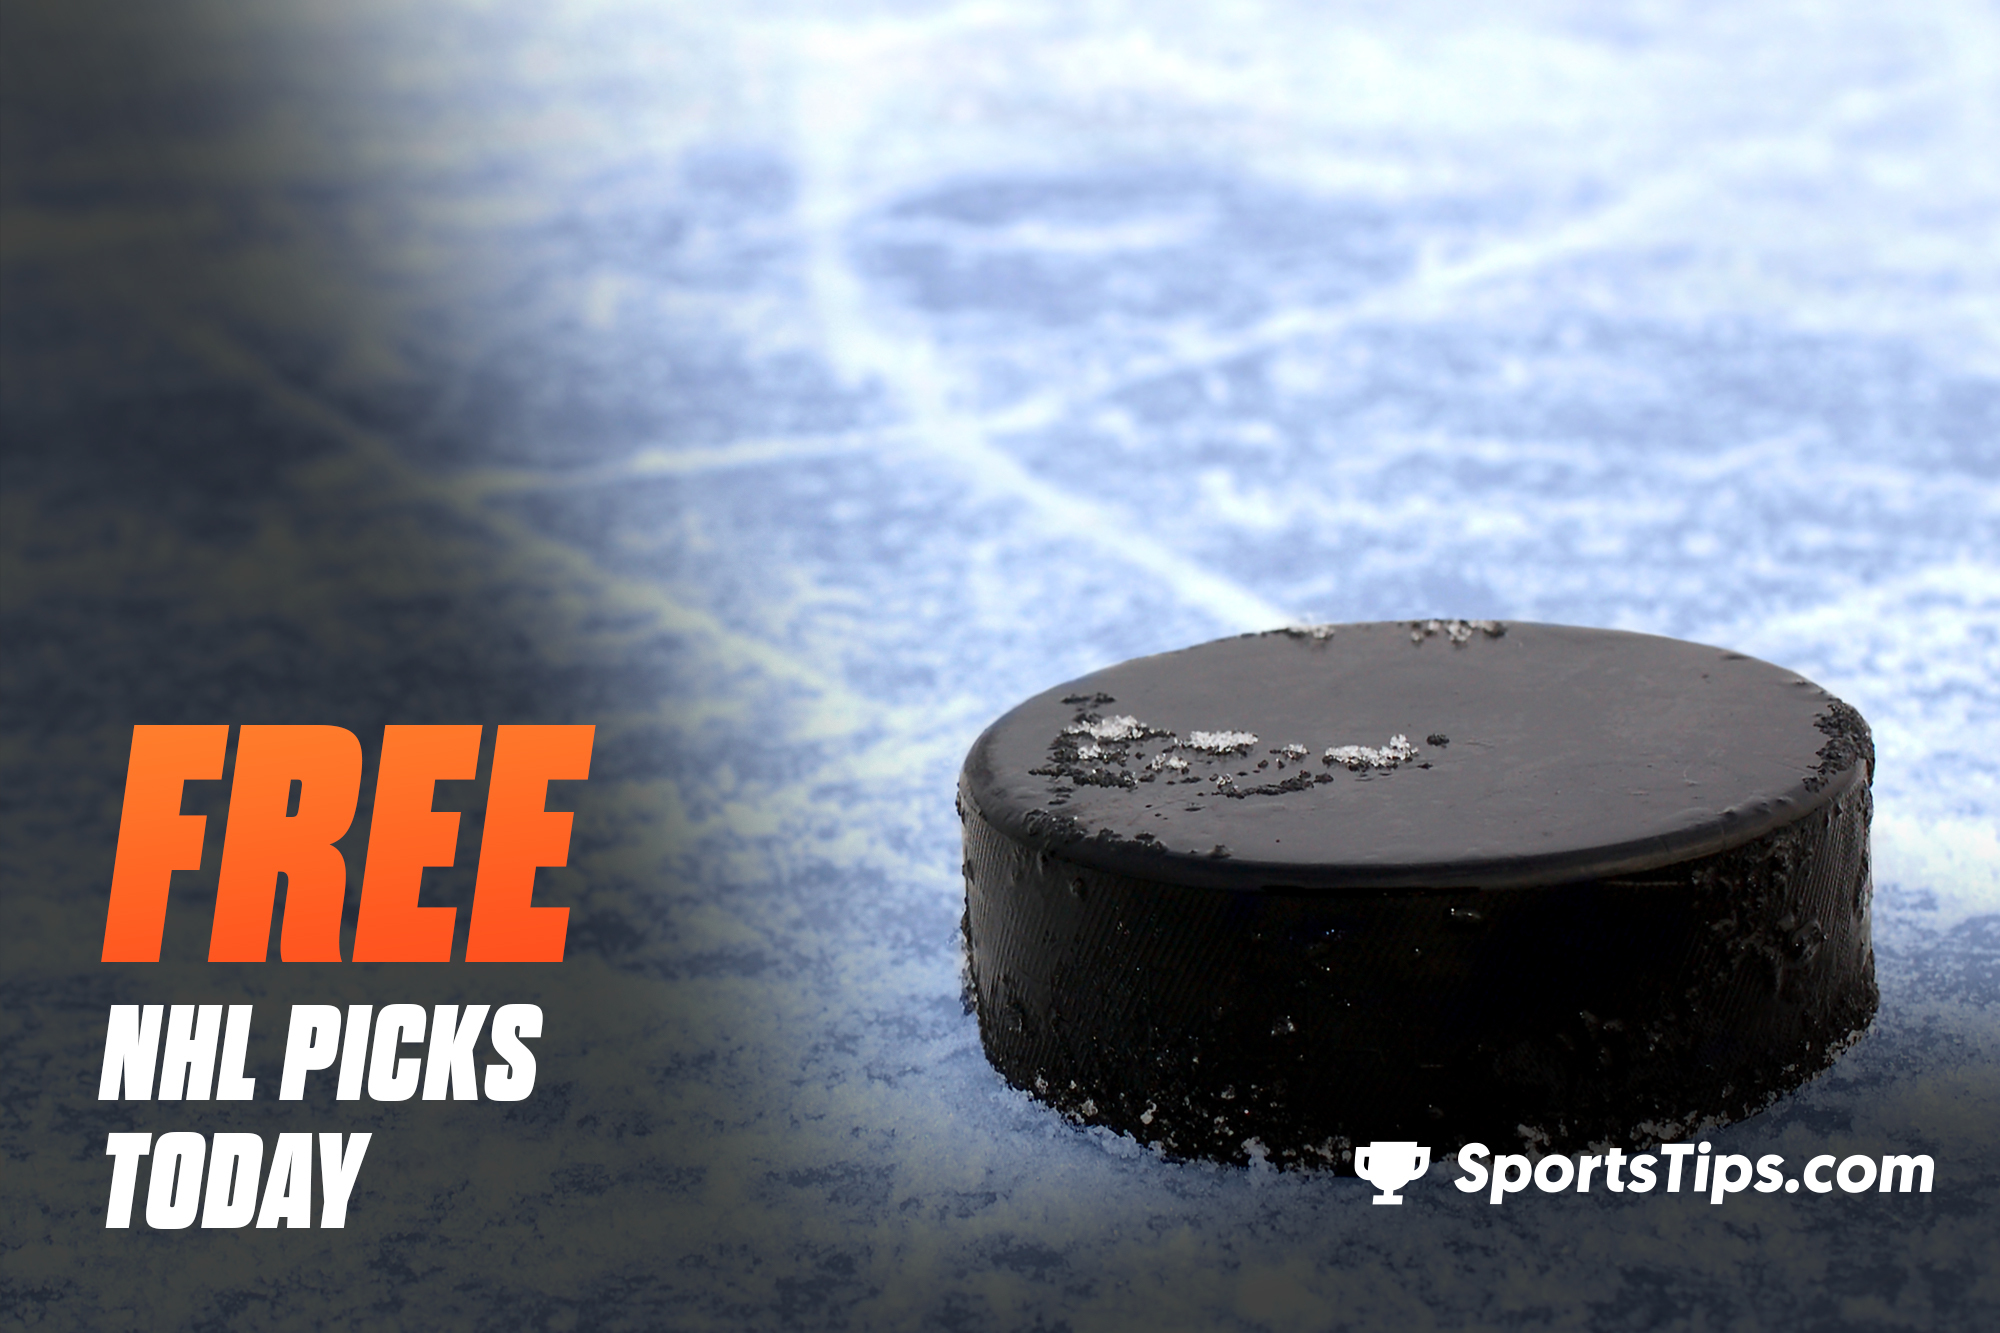 Free NHL Picks Today for Monday, February 15th, 2021